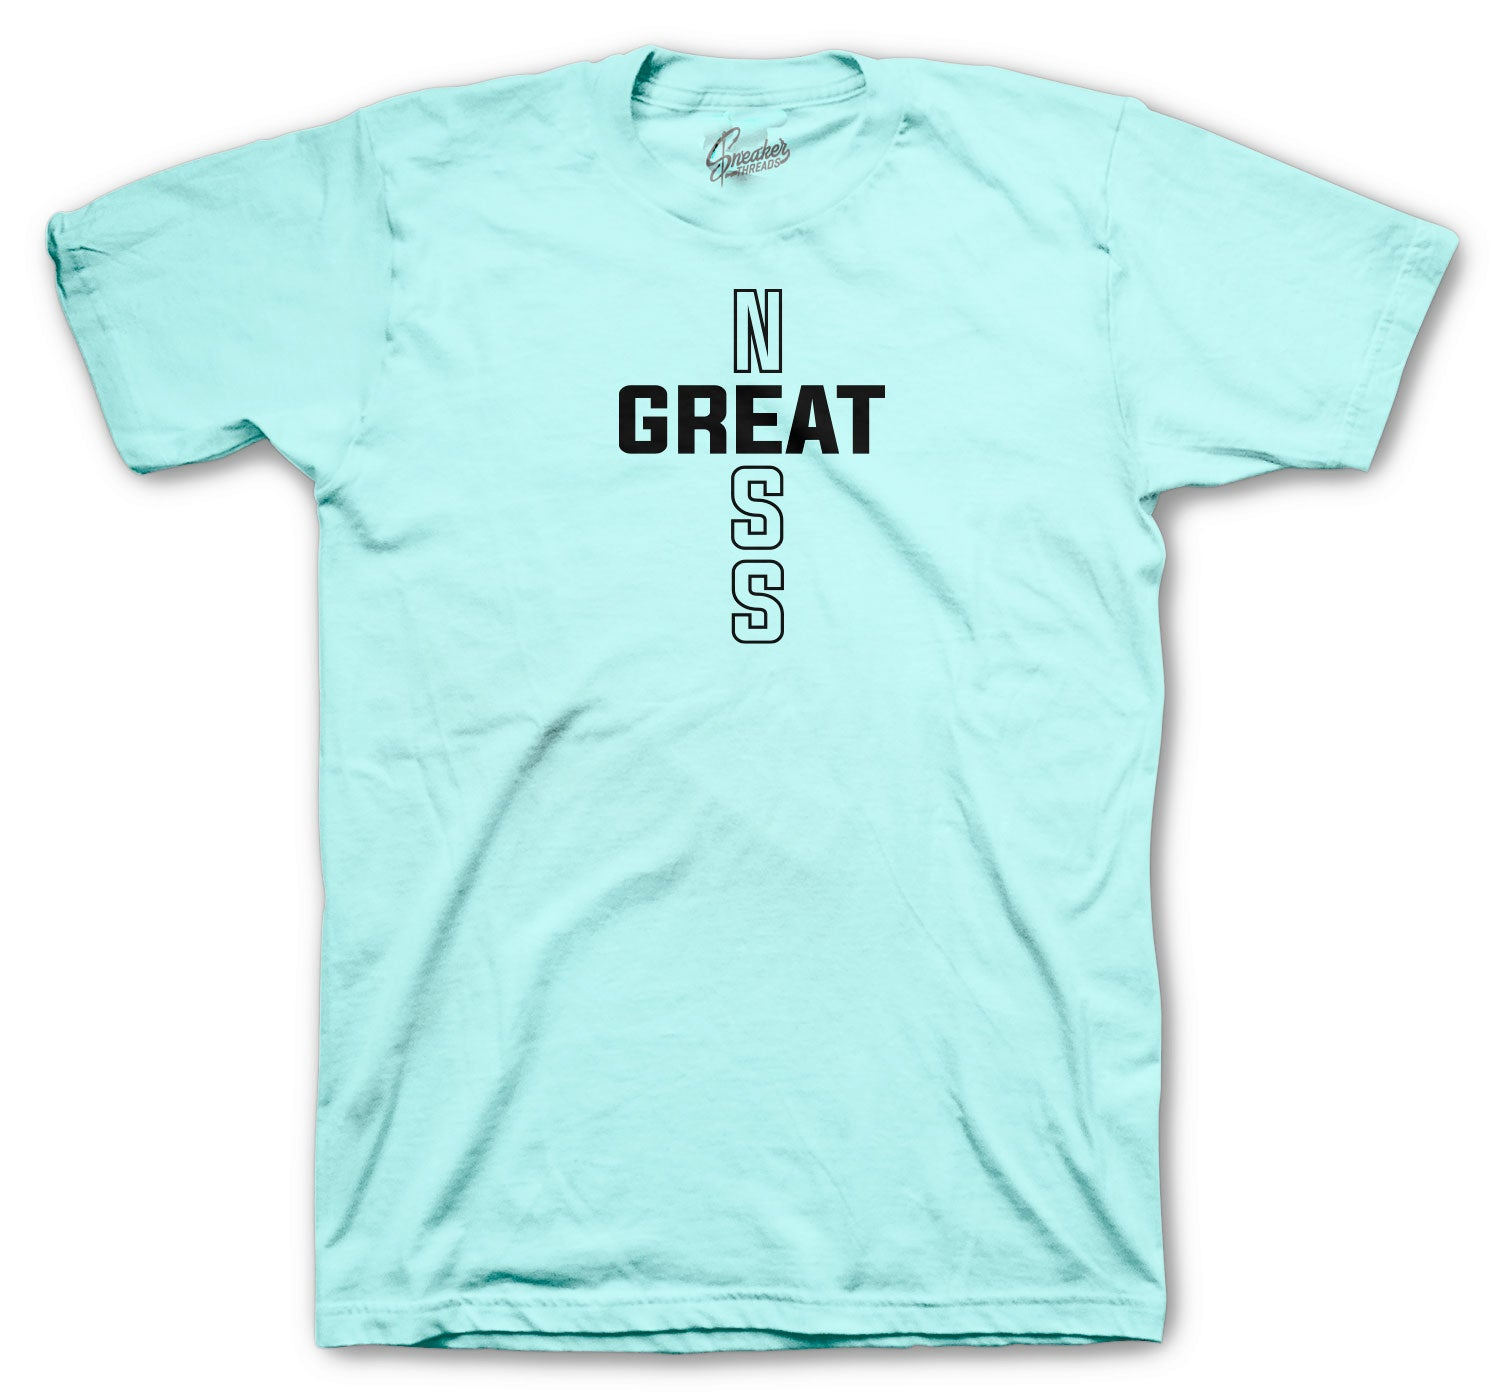 Jordan 12 Easter Greatness Cross Shirt